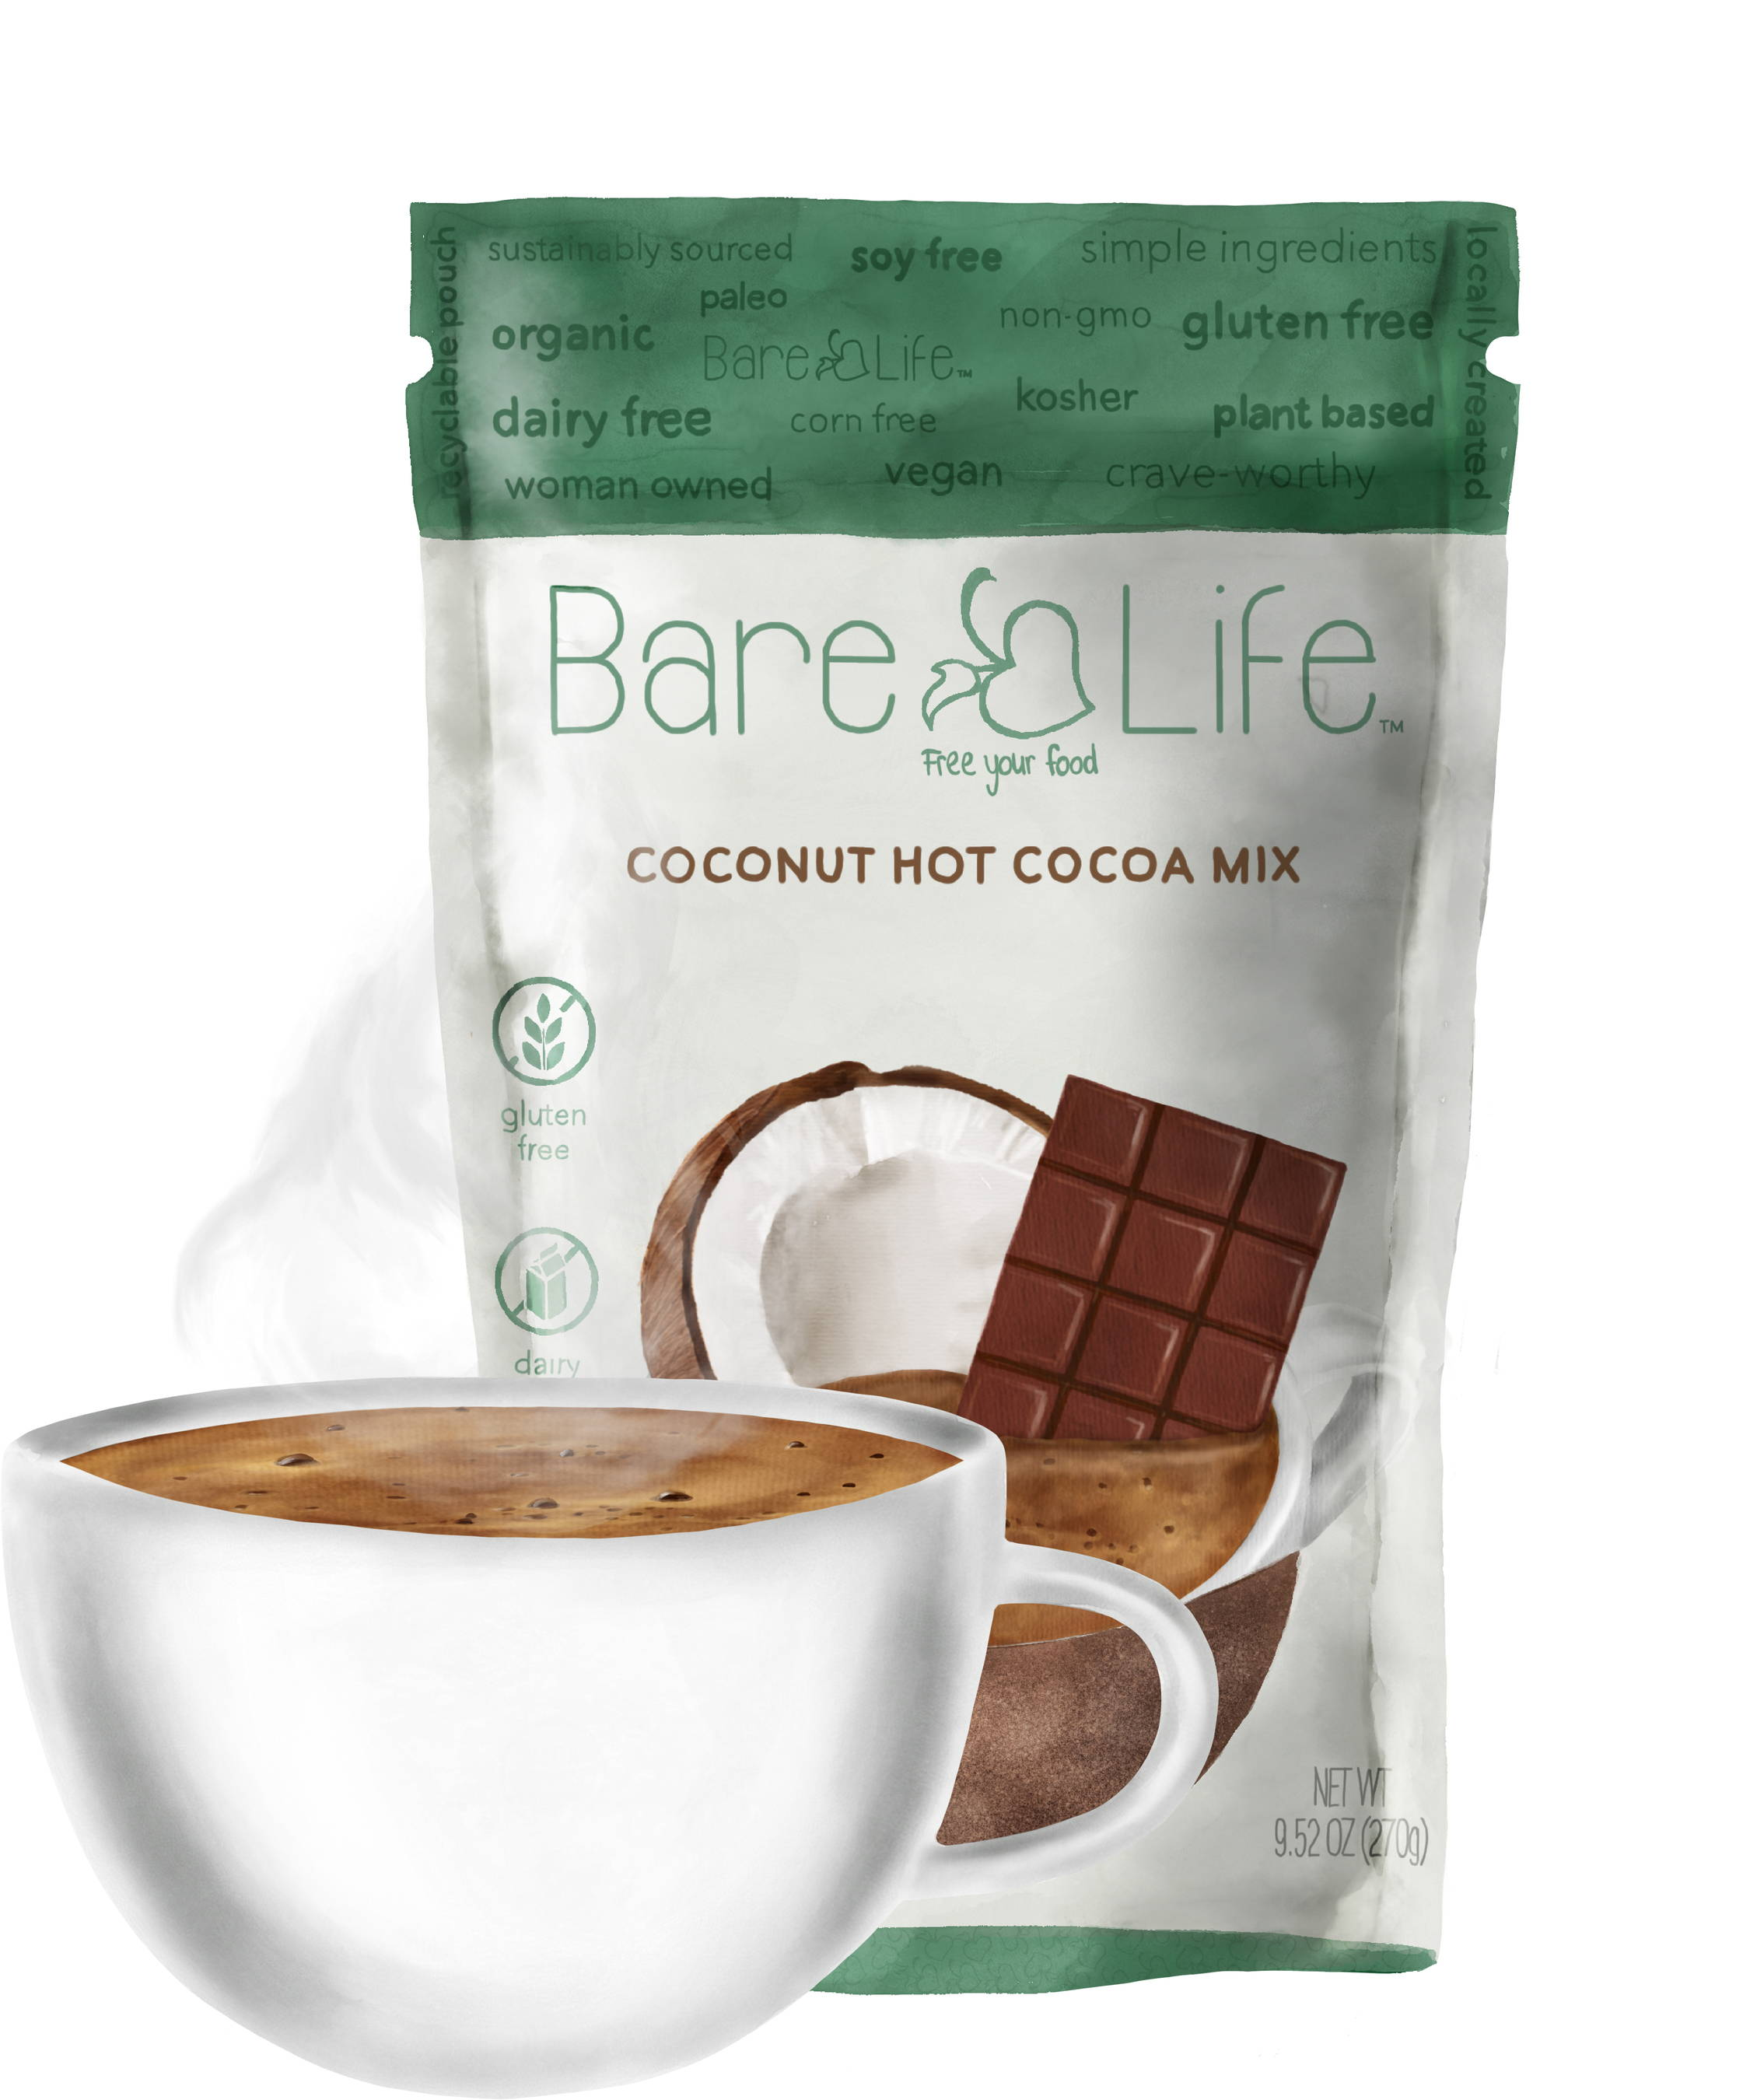 Recyclable Flexible Packaging for Bare Life Coconut Hot Cocoa Mix